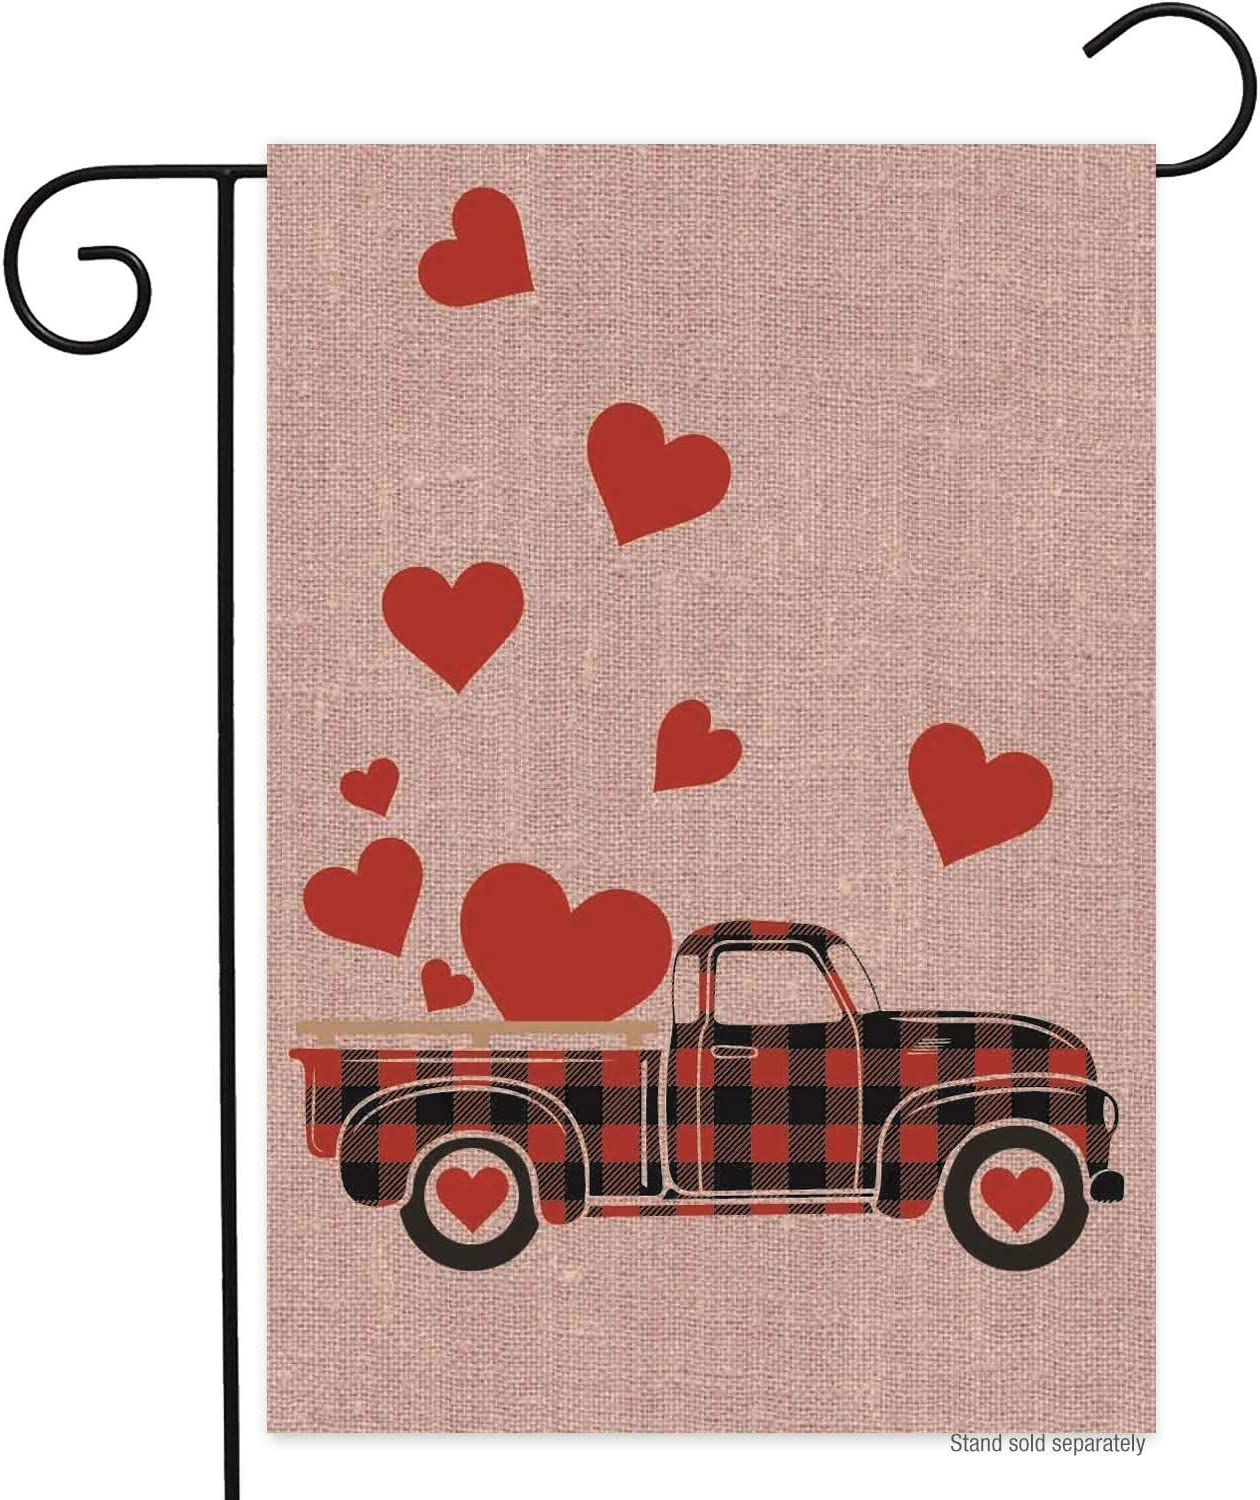 Happy Valentines Day Truck Garden Flag Red Buffalo Plaid 12 x 18 Double Sided Love Heart Truck Valentines Burlap Garden Yard Flags for Valentine's Day Decor Yard Outdoor Decoration